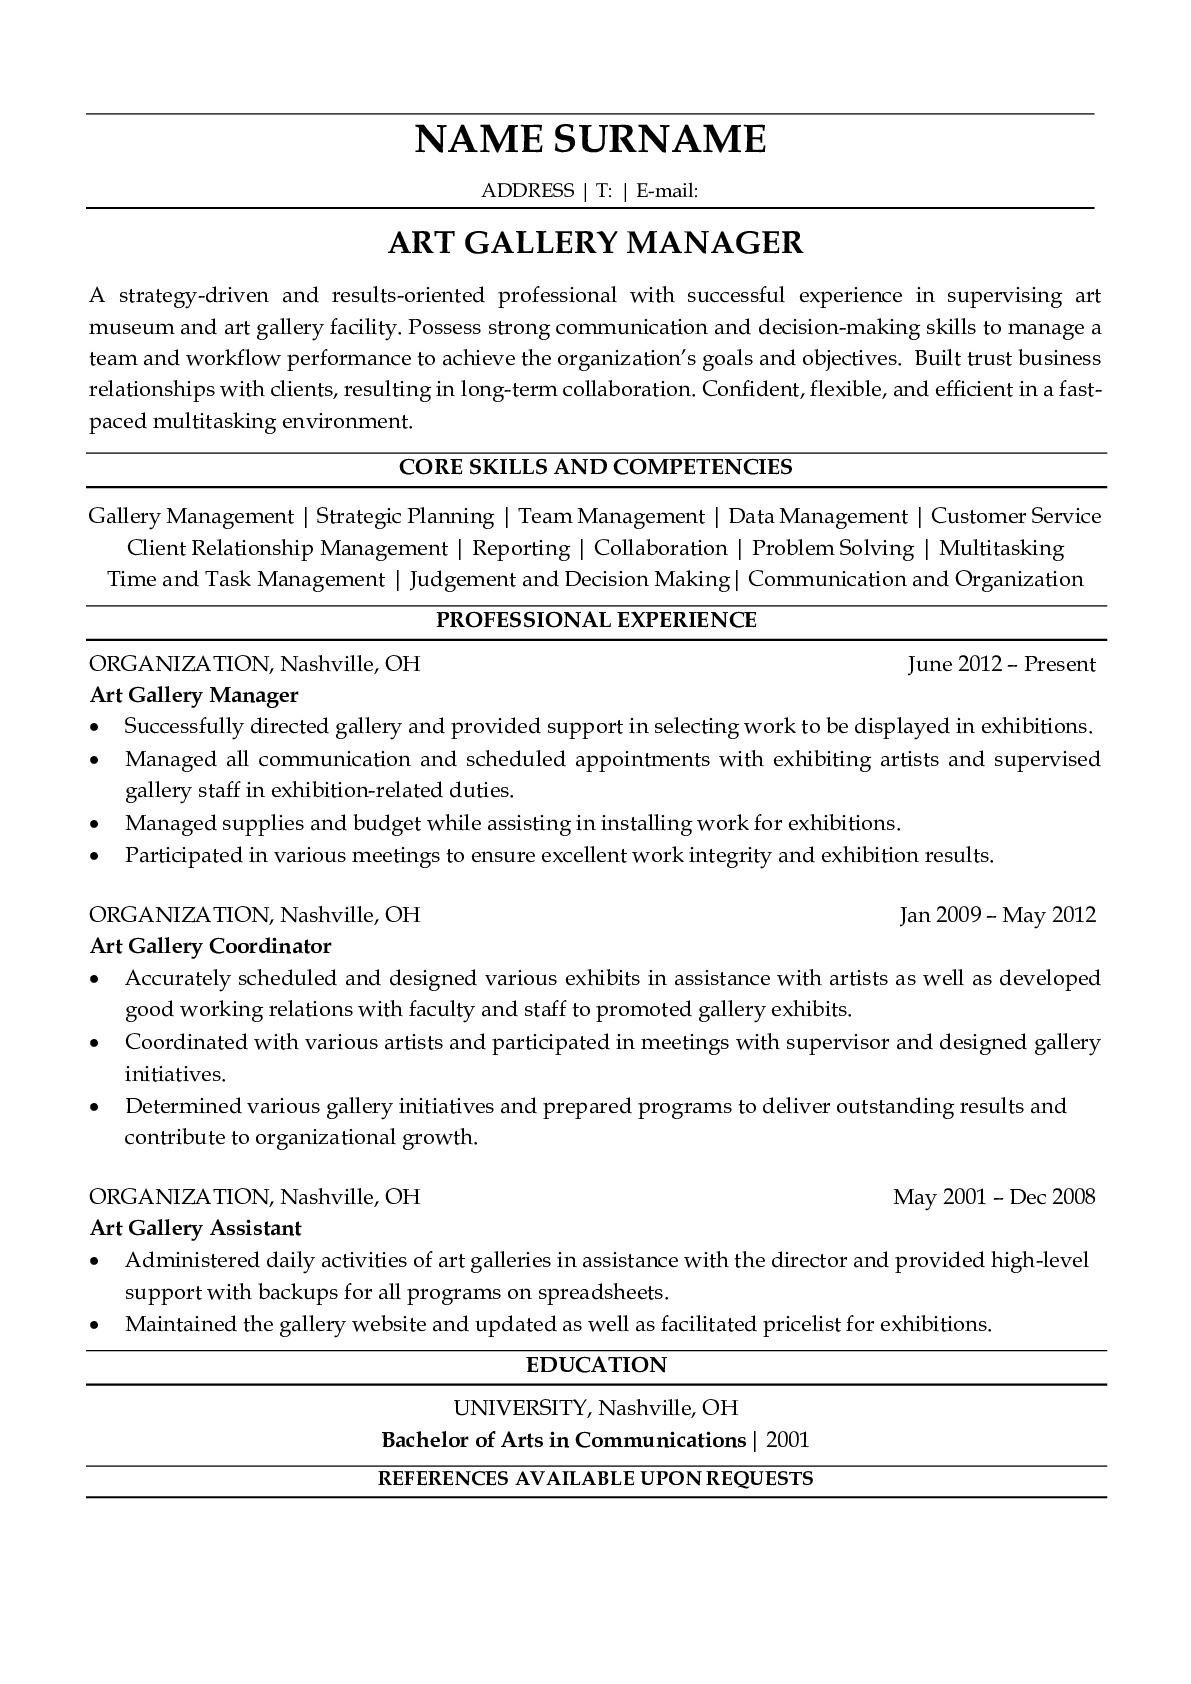 Resume Example for Art Gallery Manager